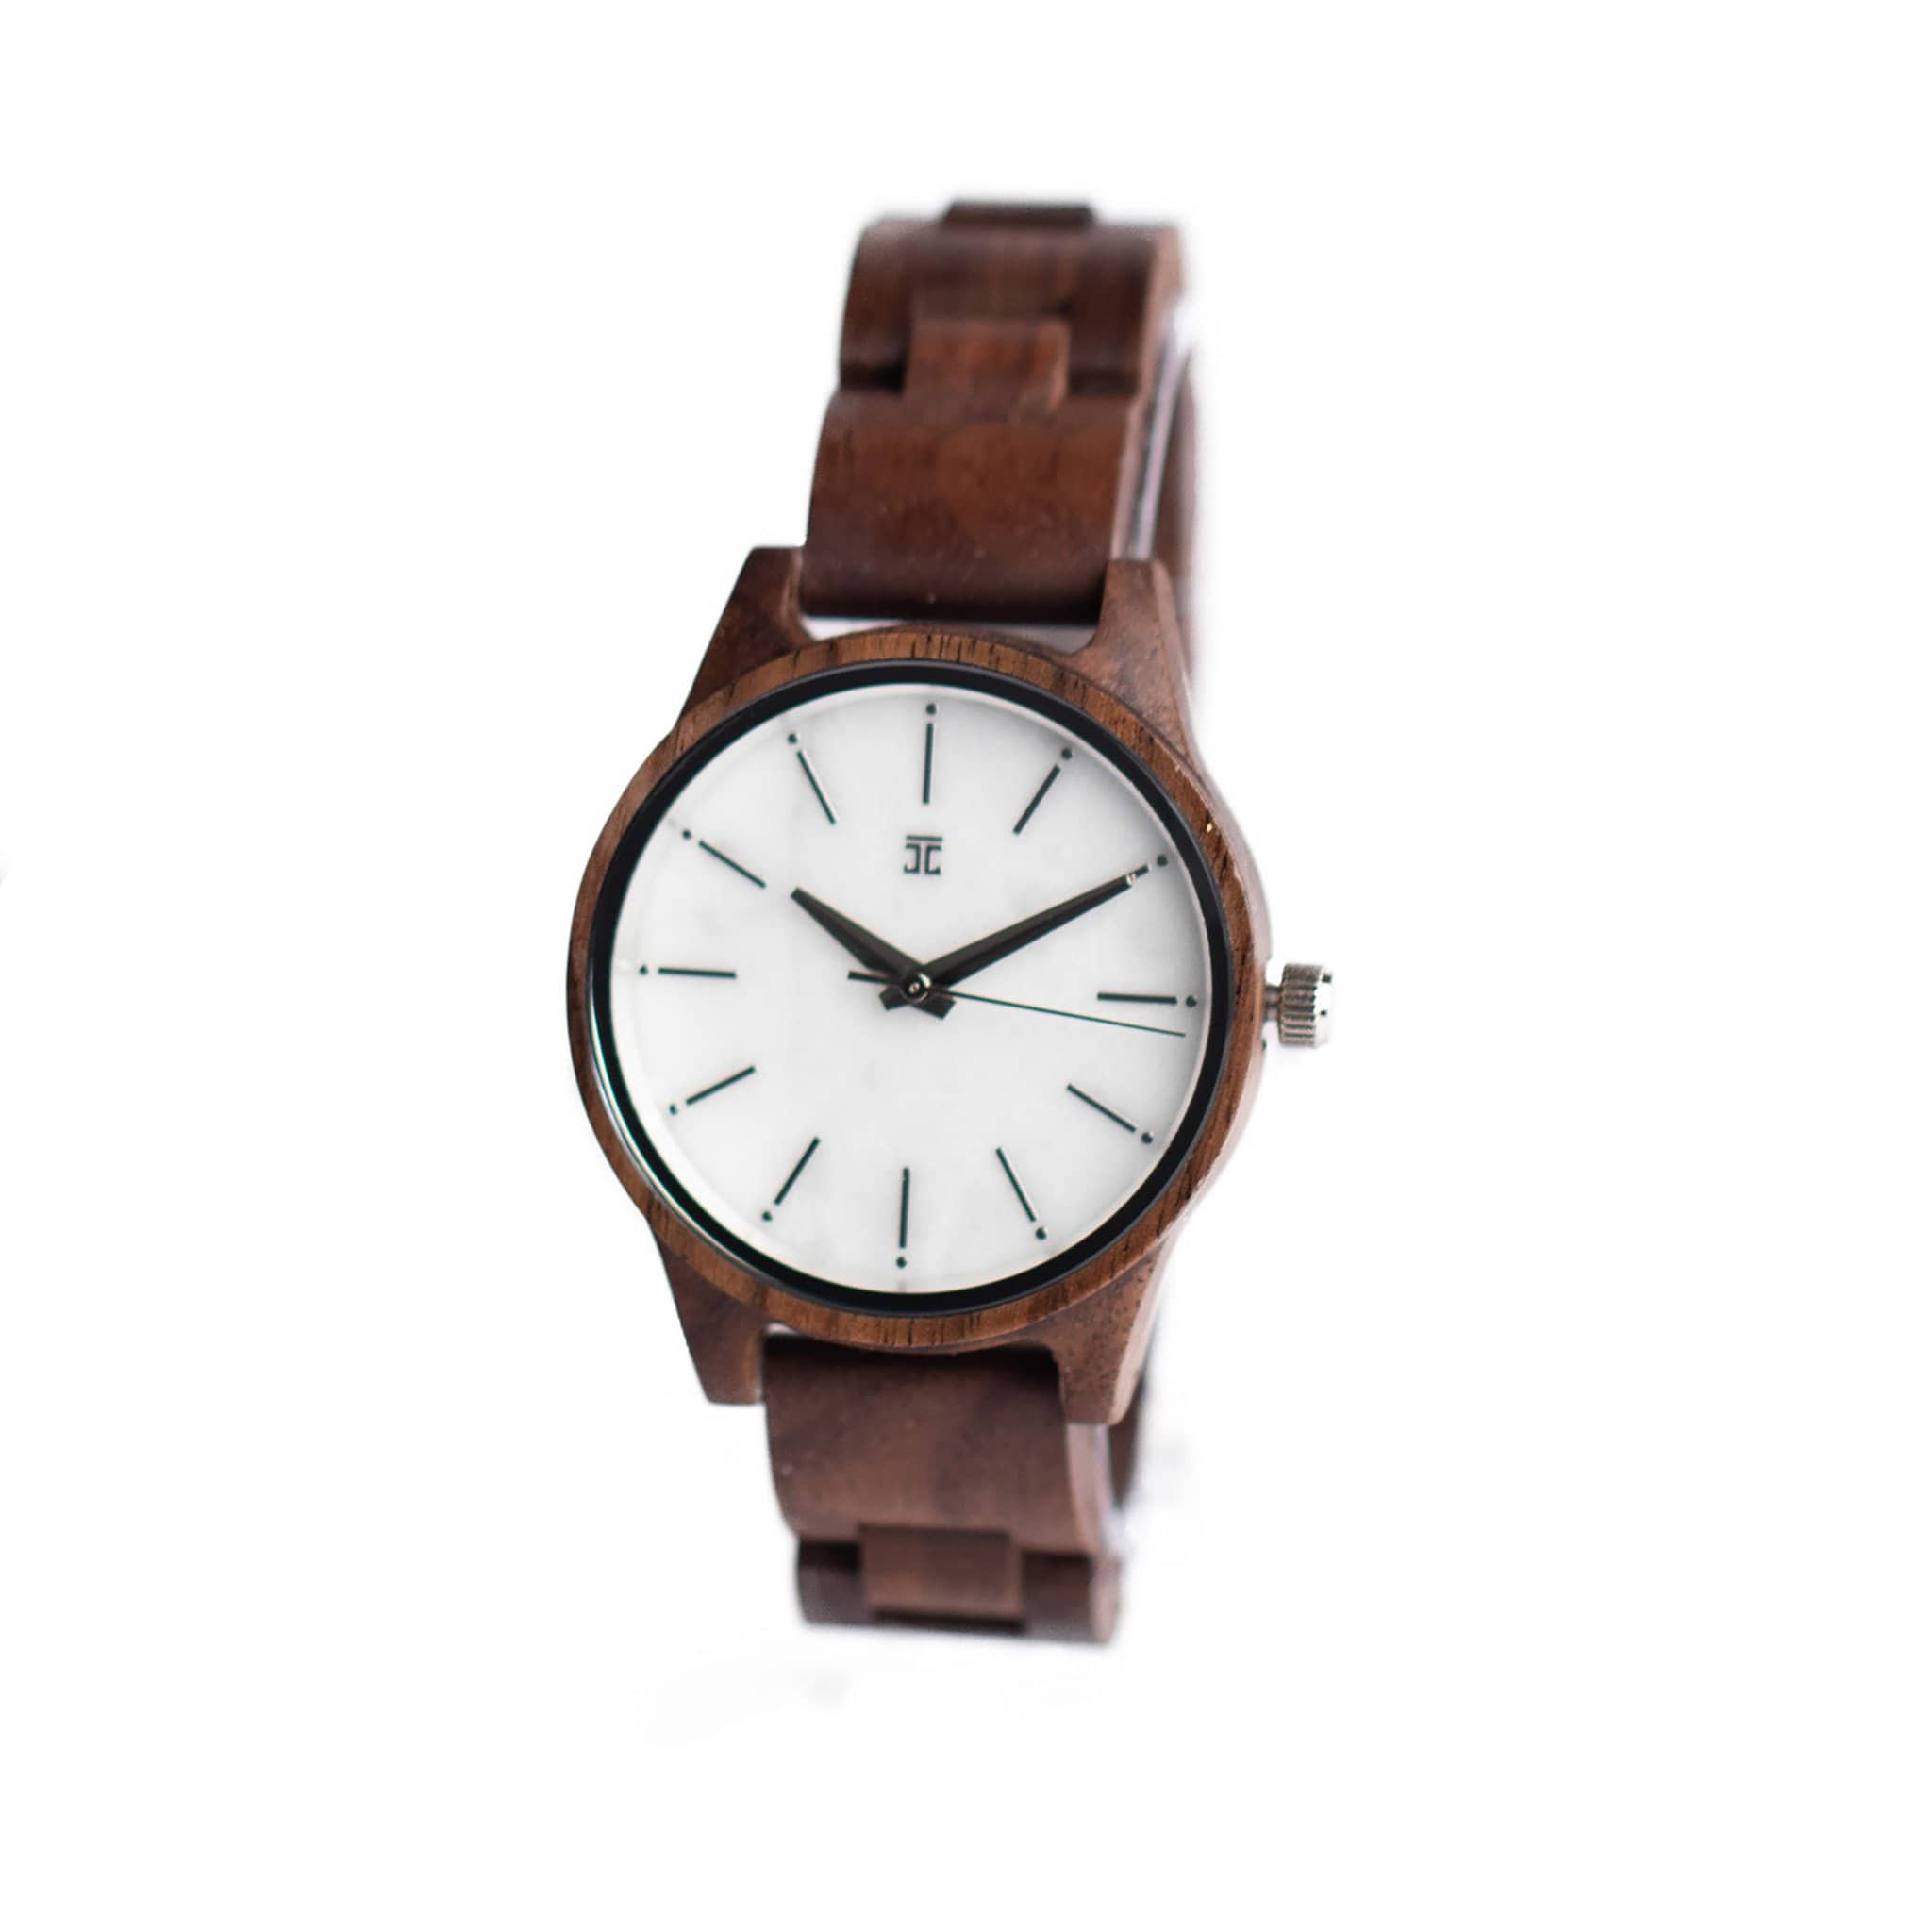 Casso Walnut with Marble Face - Wooden Watches and Sunglasses - Joycoast